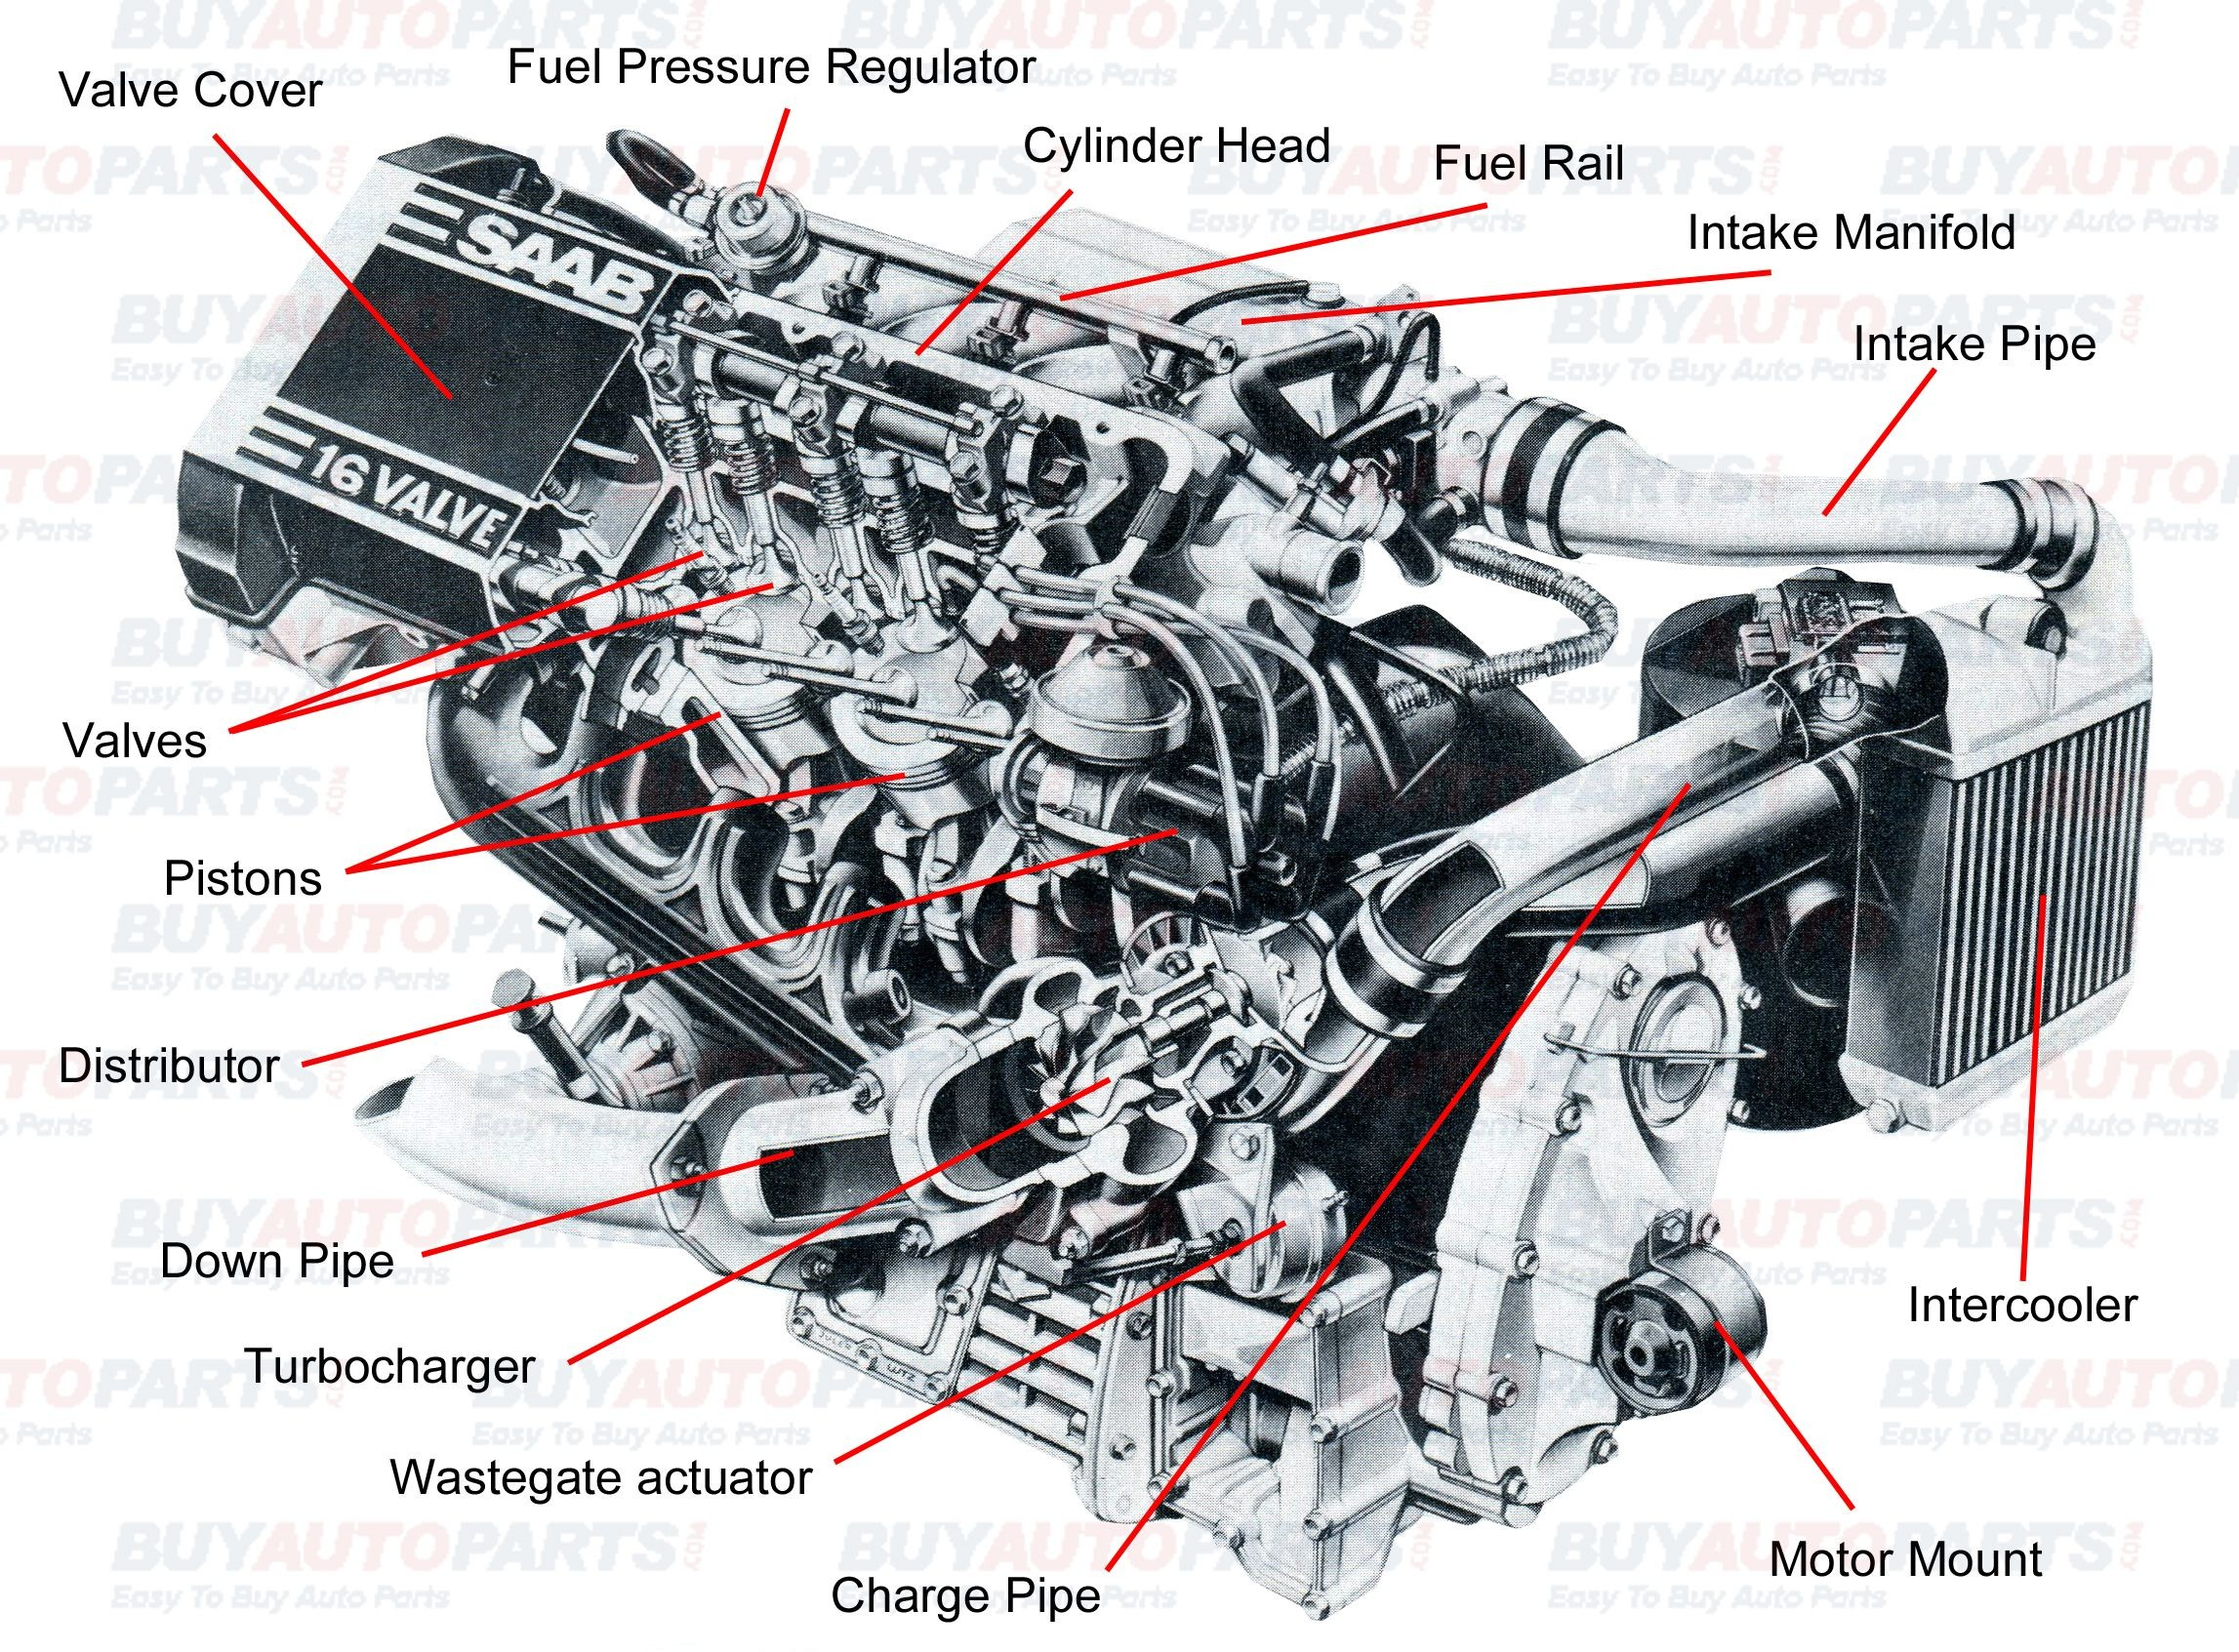 Diagram Of Car Parts Under the Hood Pin by Jimmiejanet Testellamwfz On What Does An Engine with Turbo